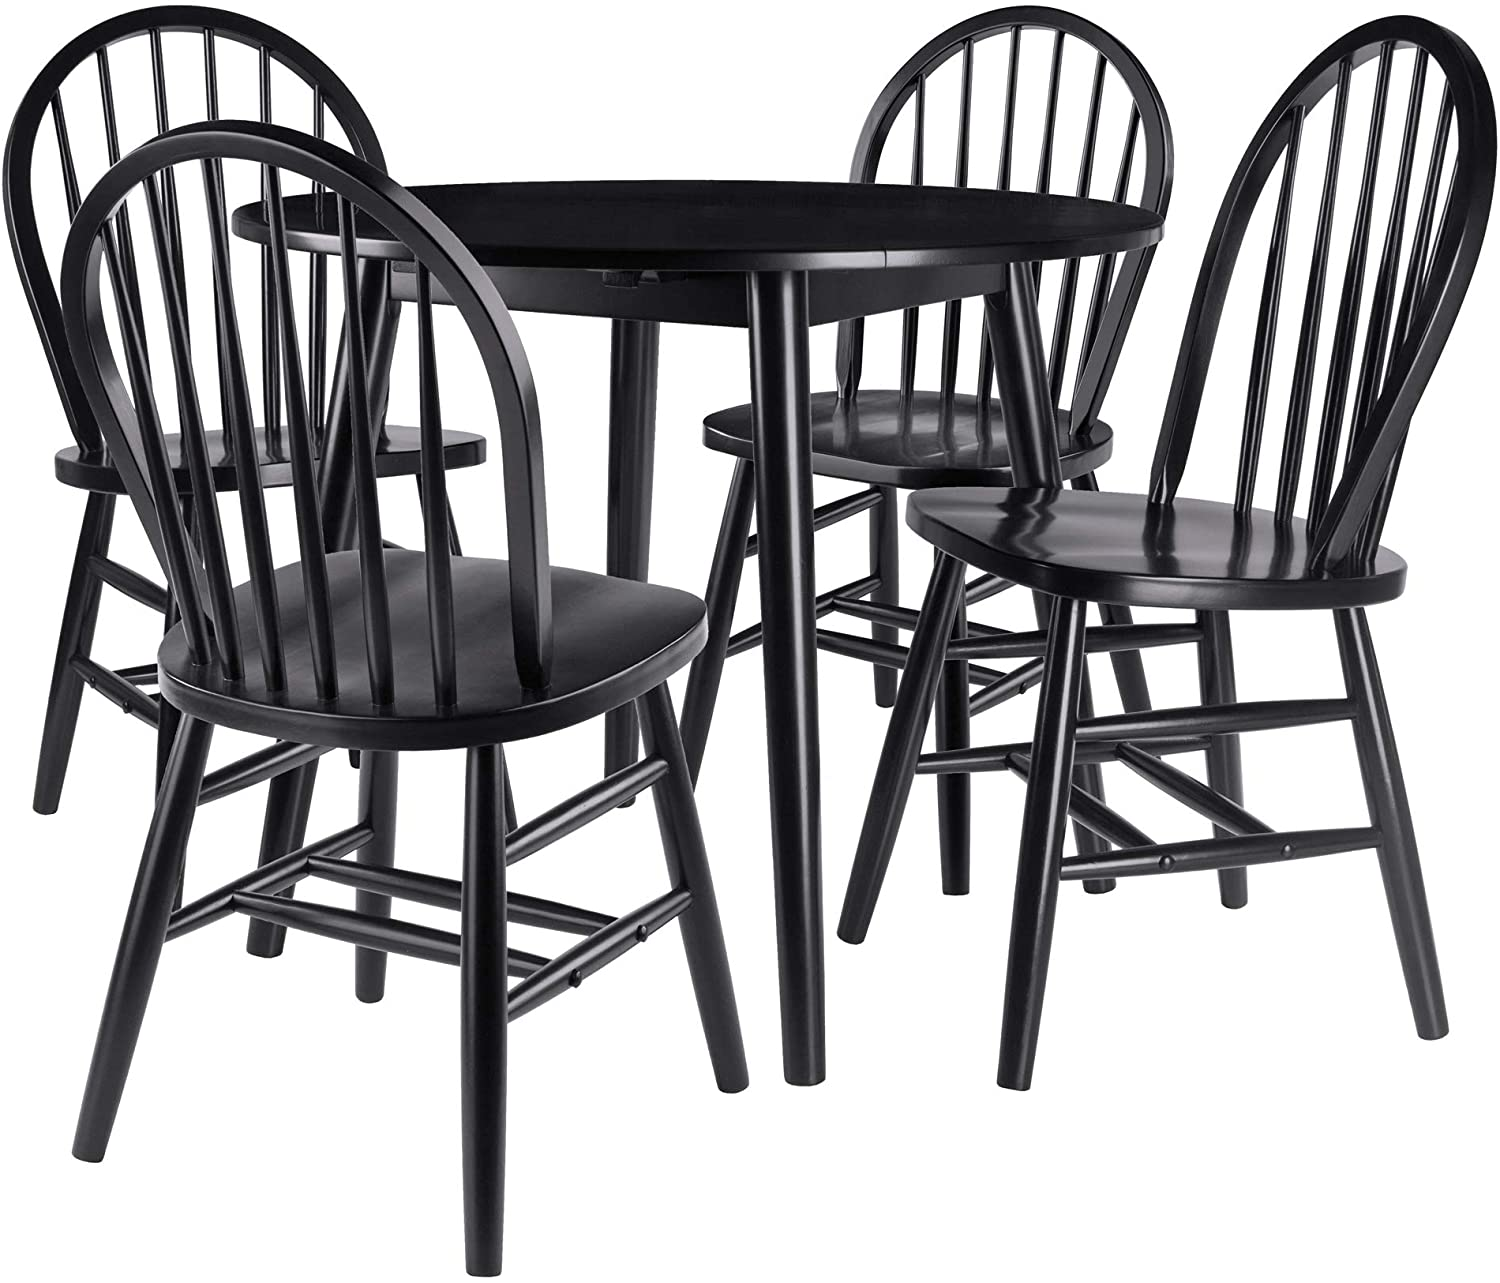 Moreno 5-Piece Set Drop Leaf Table With Chairs - Pot Racks Plus